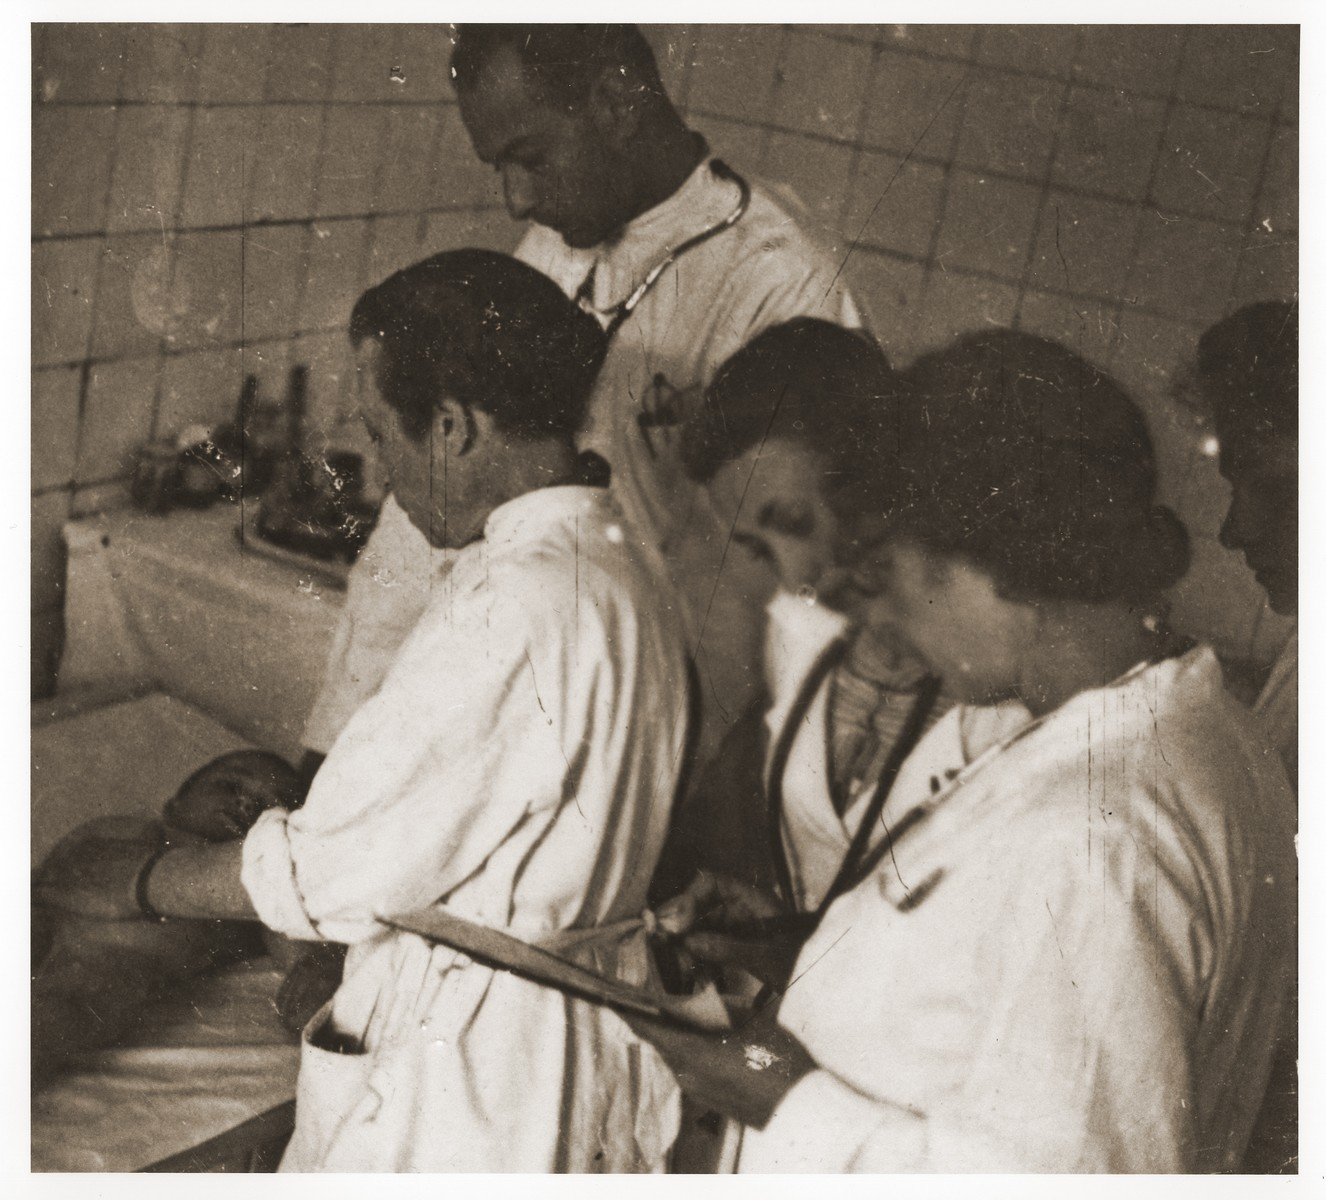 A team of doctors treats an infant in the hospital of the Lodz ghetto.